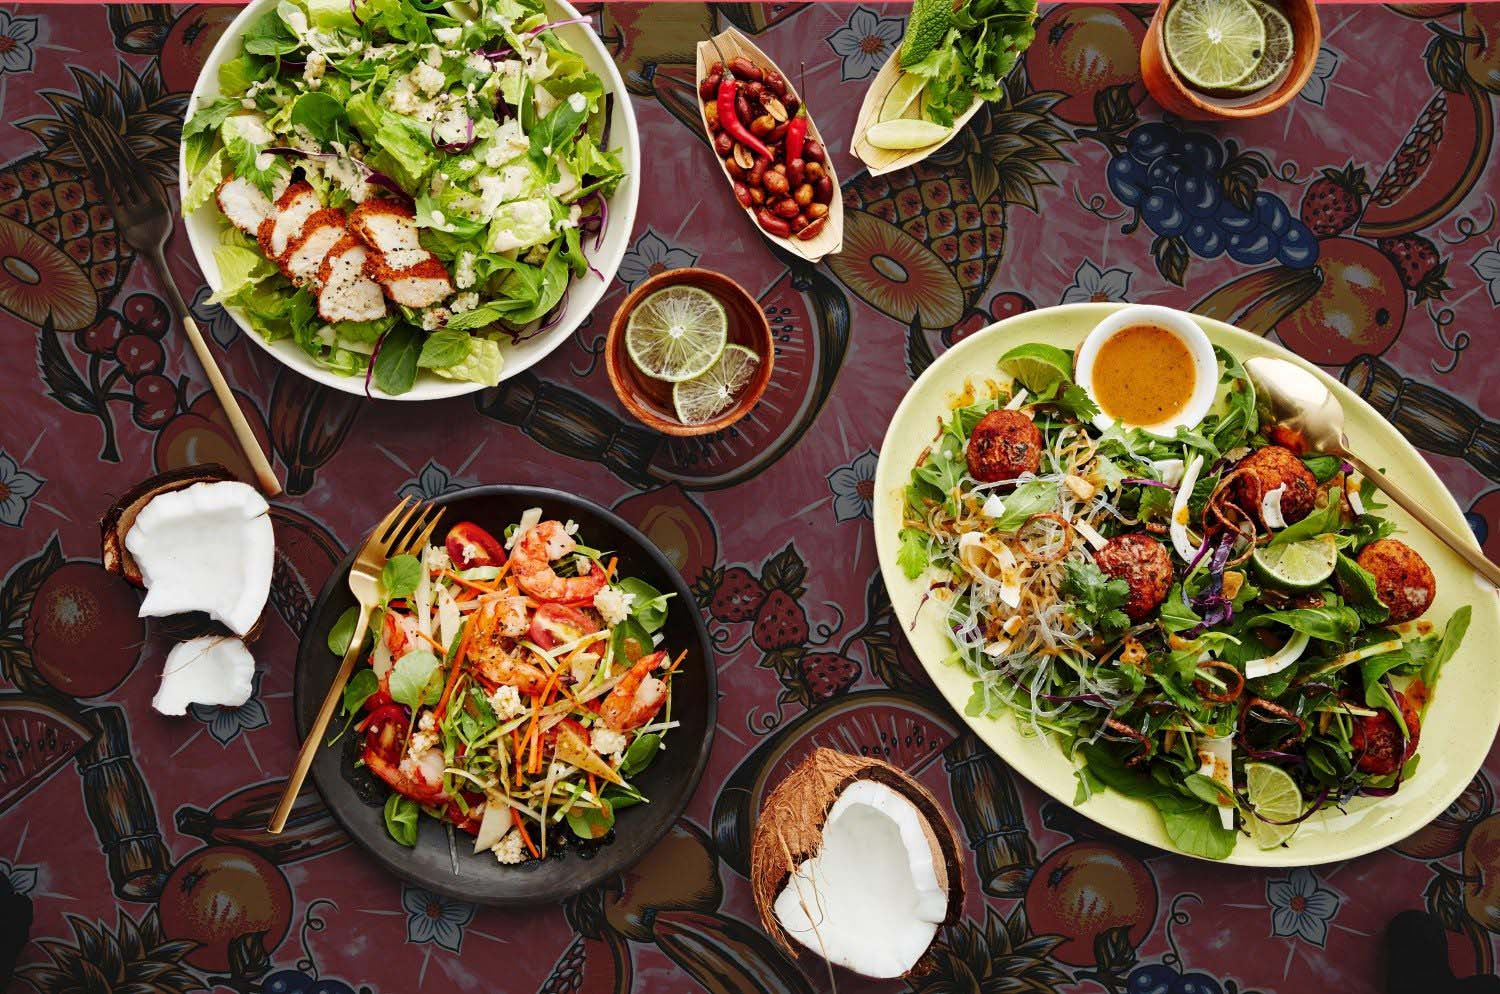 Chopt's Destination Thailand Salads